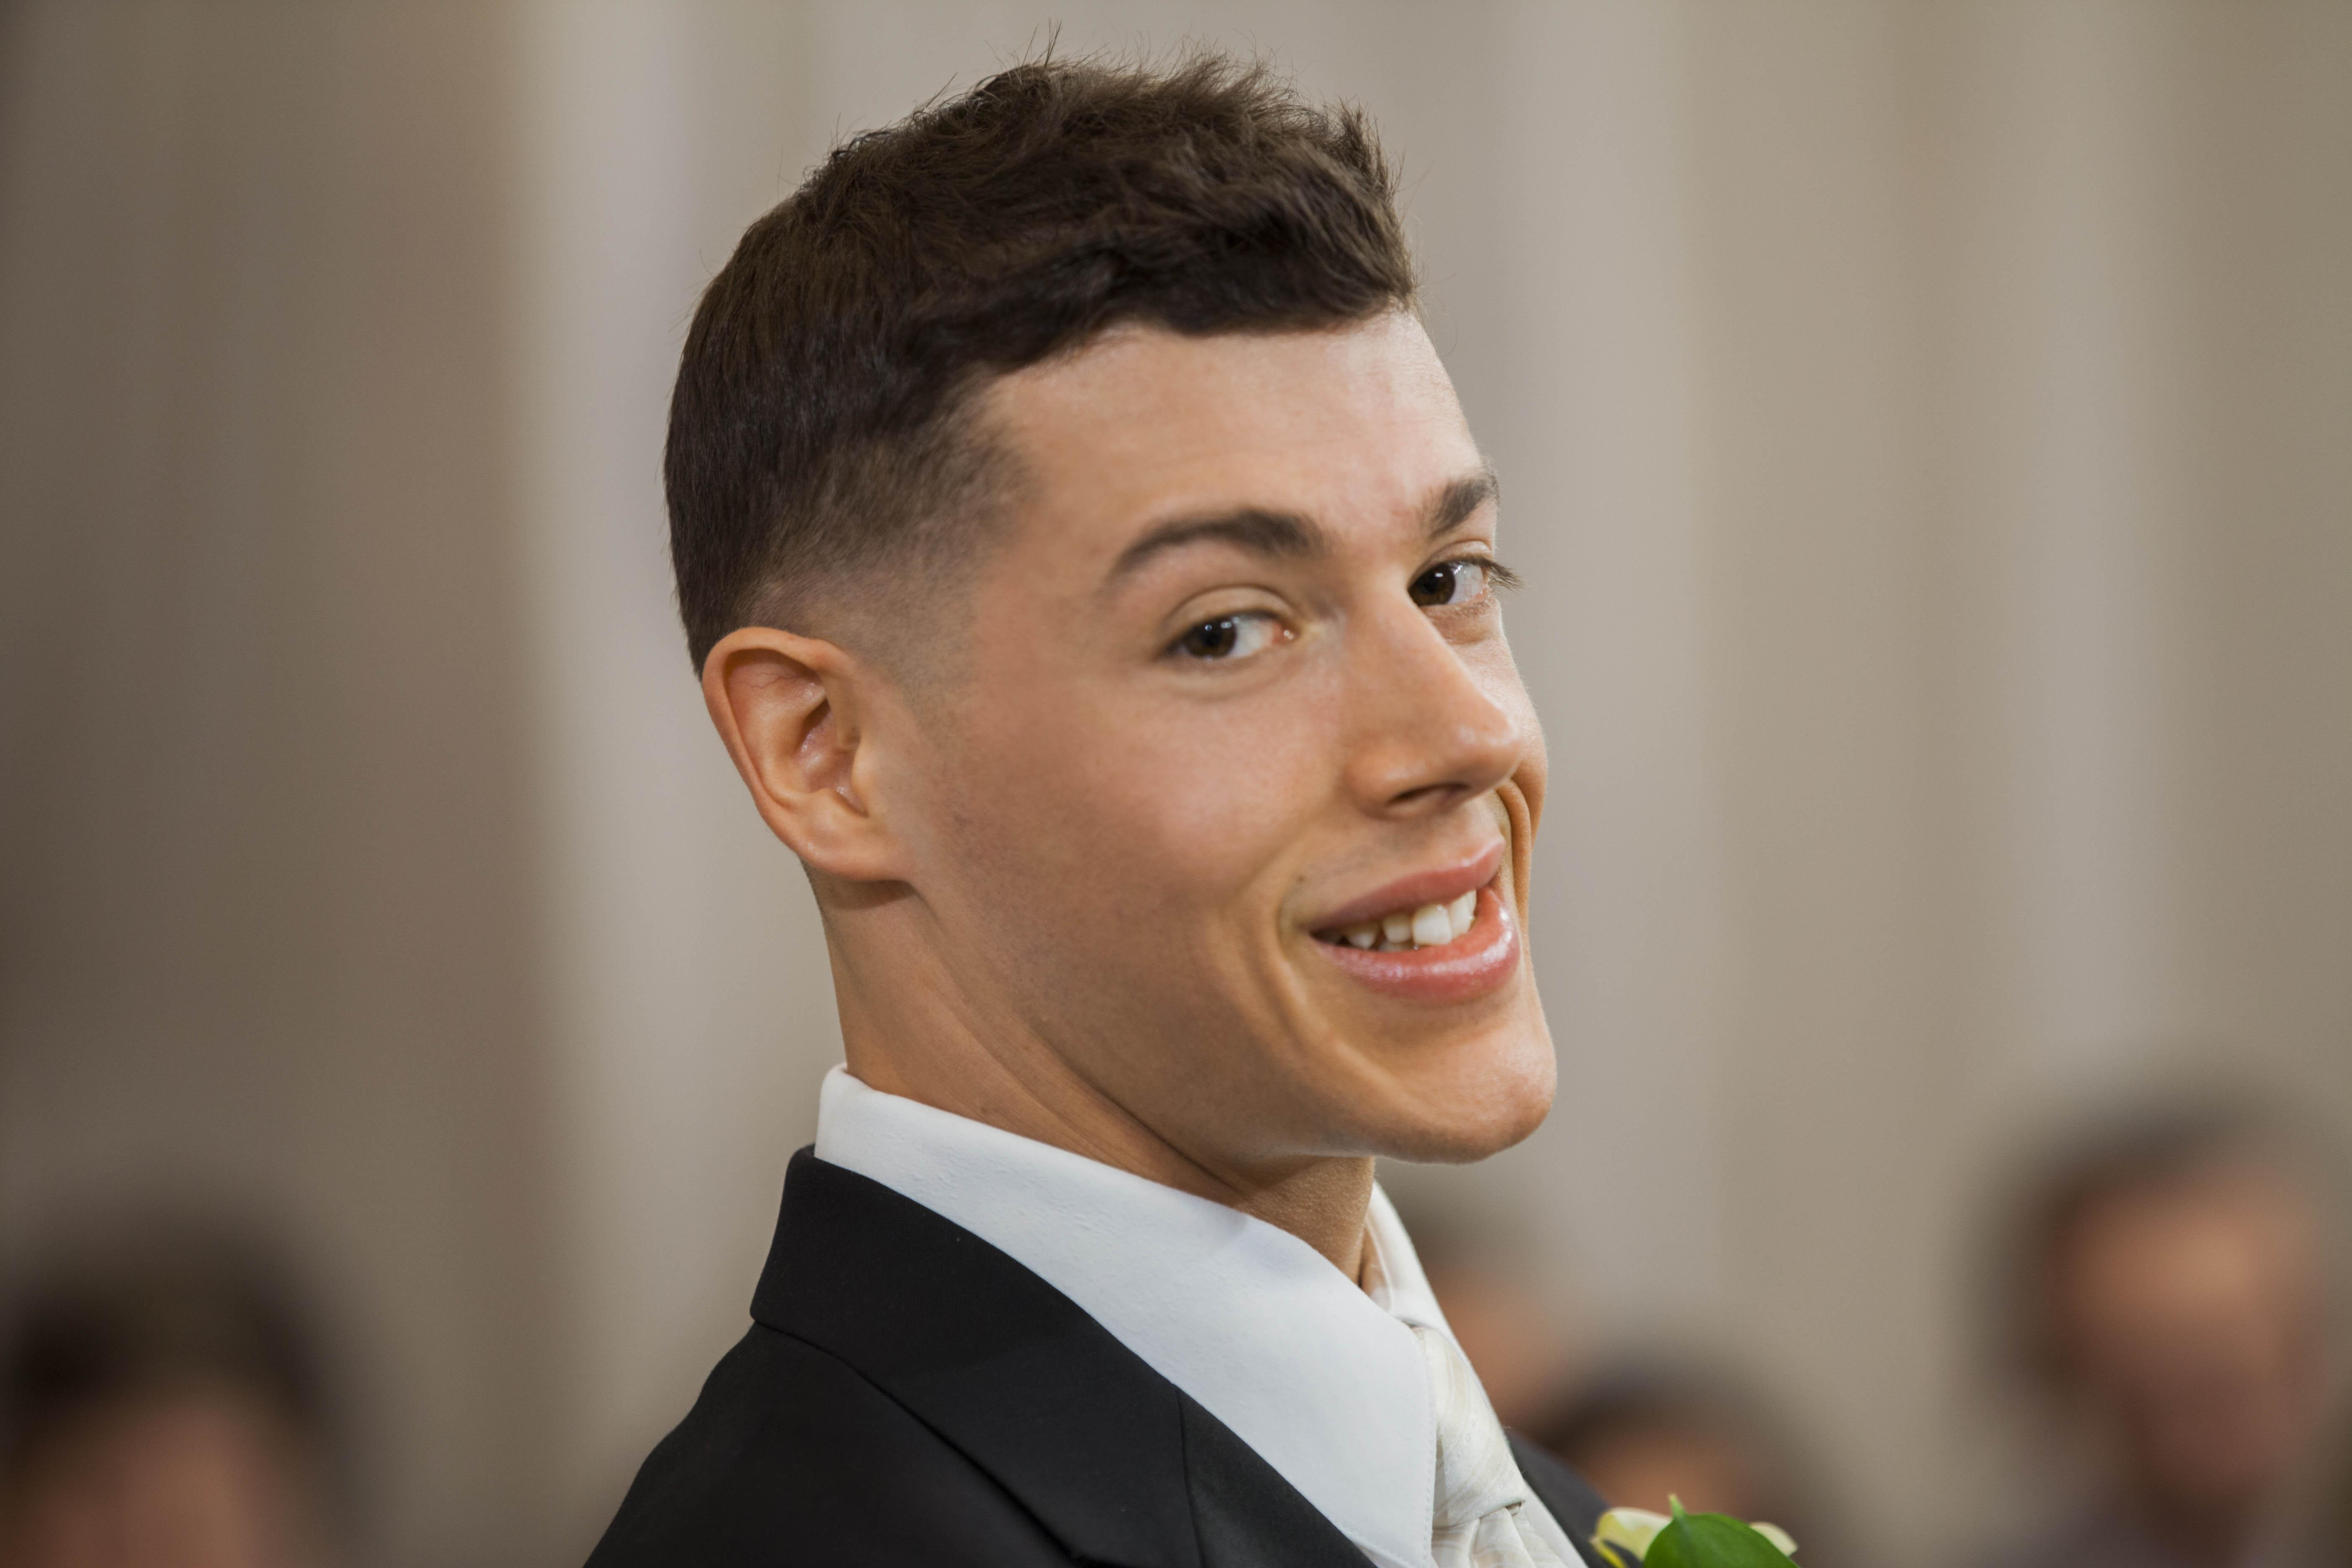 Married at First Sight Jason Carrion